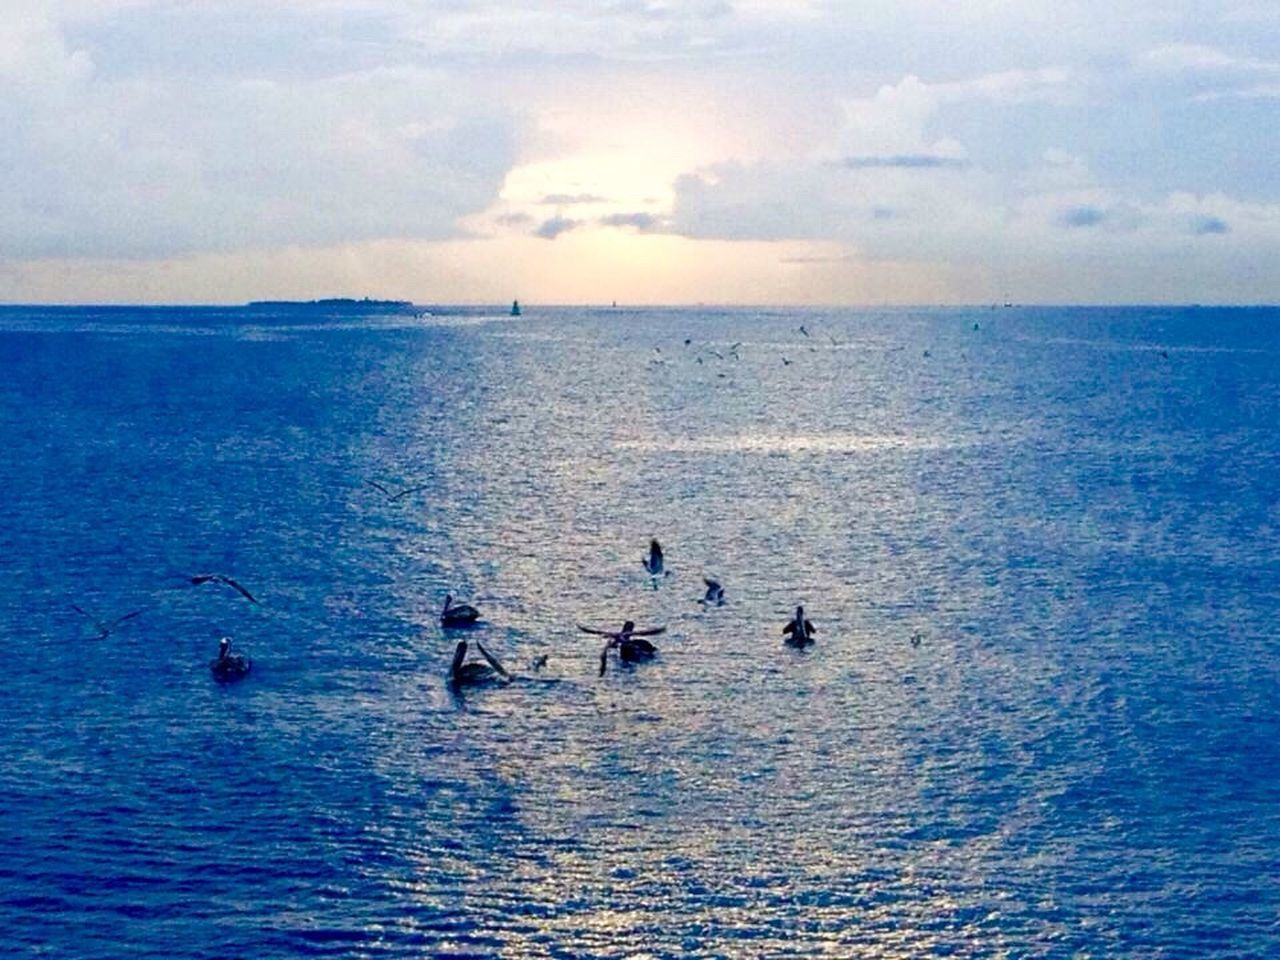 sea, water, horizon over water, nature, scenics, sky, beauty in nature, blue, waterfront, outdoors, cloud - sky, tranquility, real people, day, animals in the wild, men, sunset, togetherness, bird, paddleboarding, people